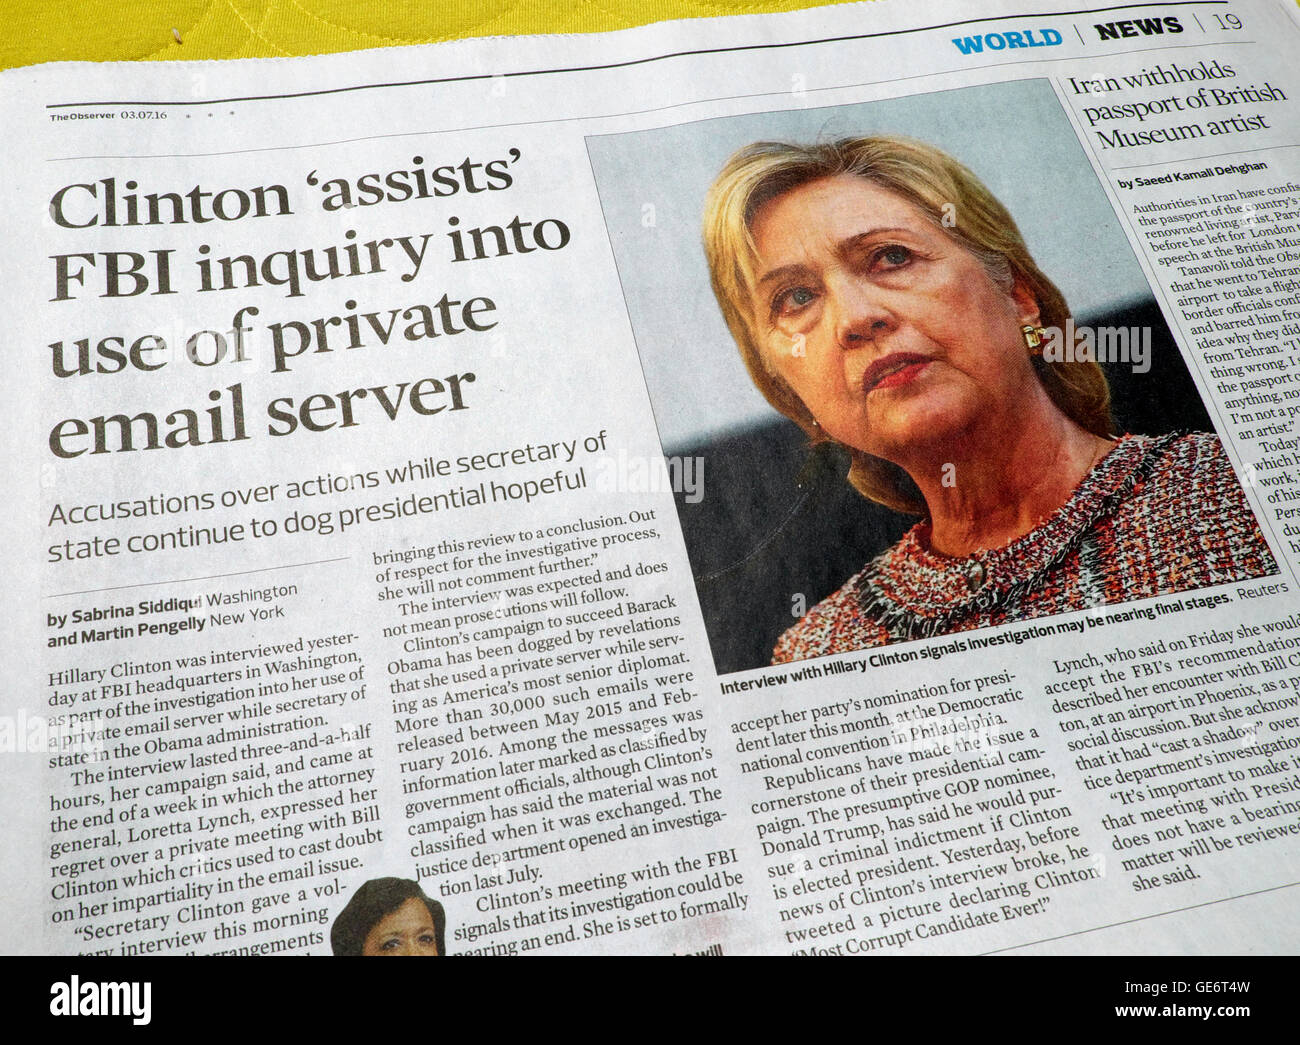 Clinton 'assists' FBI inquiry into use of private email server'  in Observer newspaper article 3 July - Stock Image